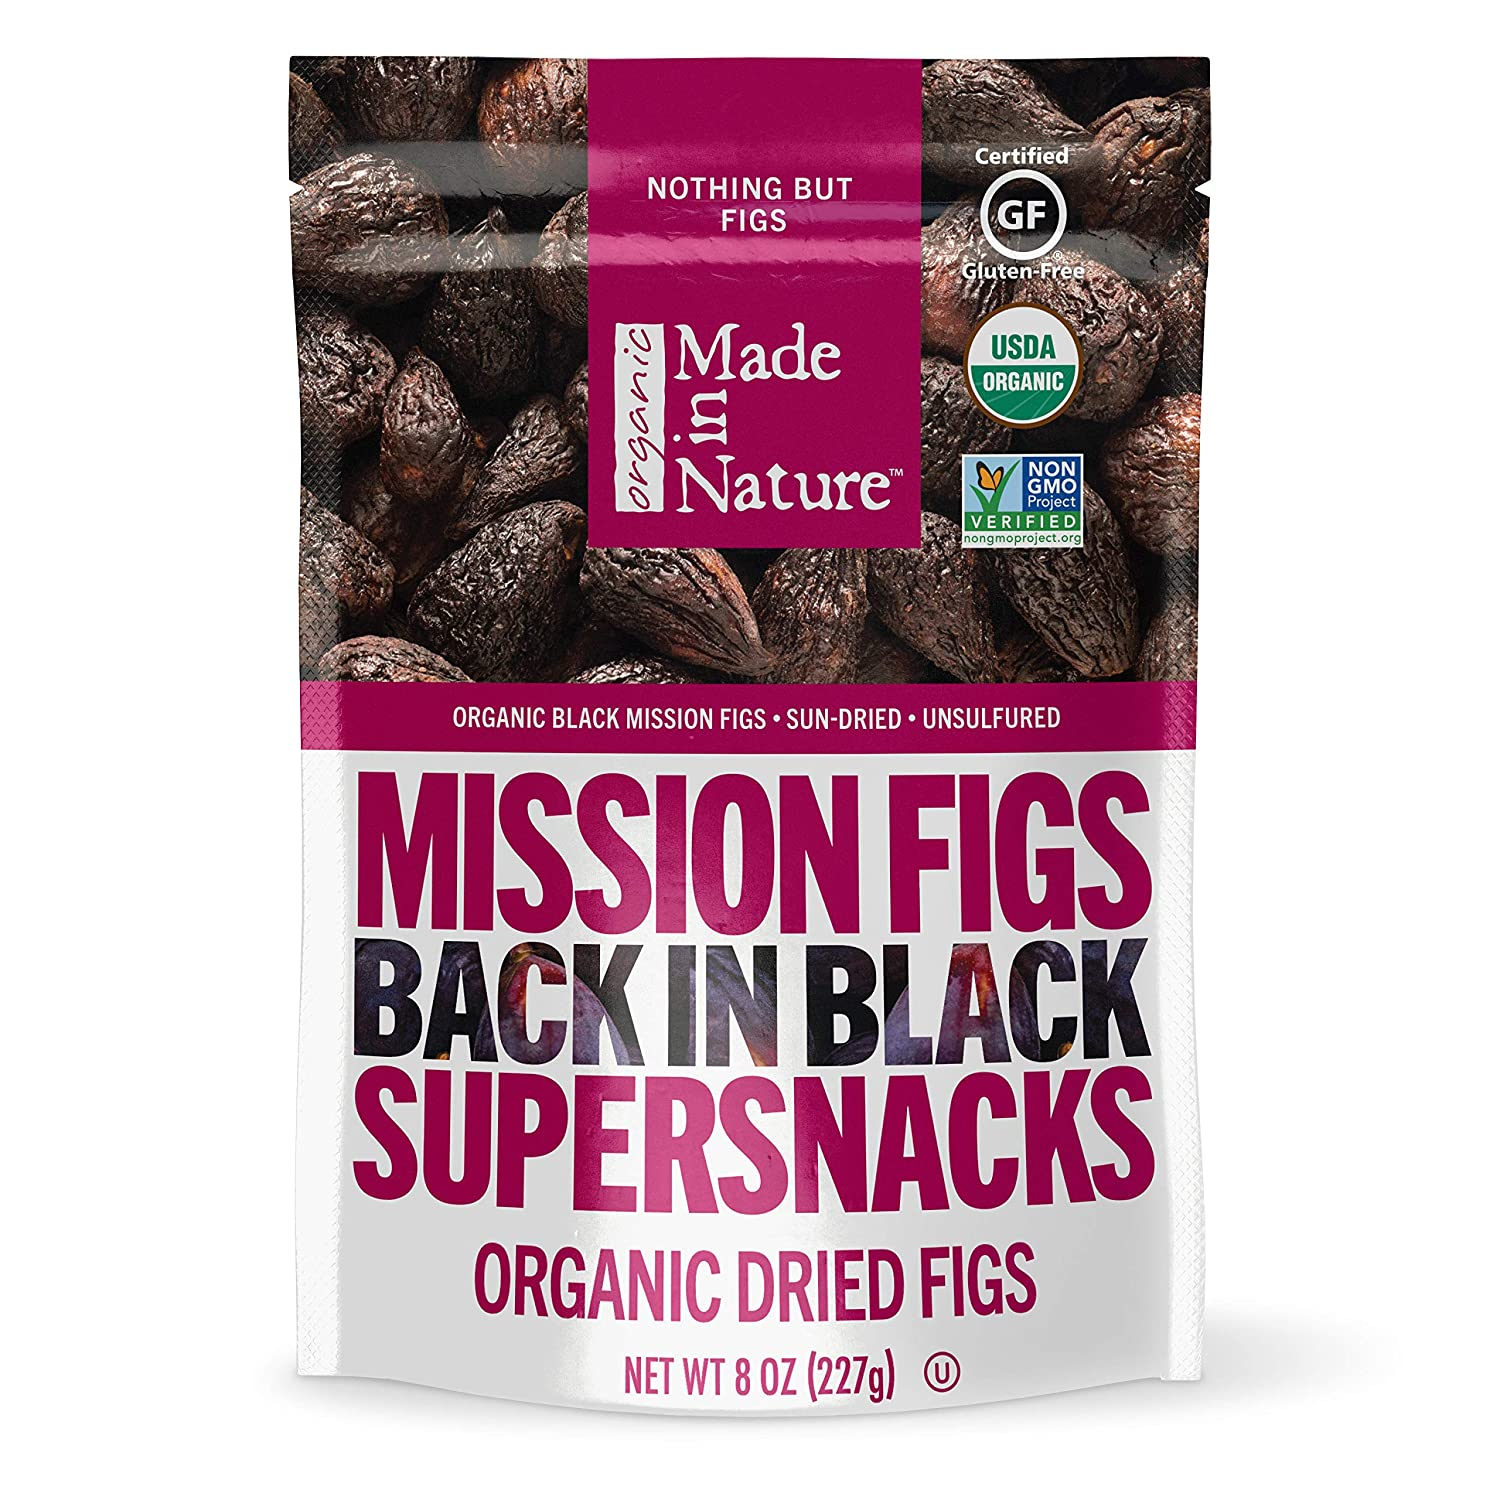 Made in Nature Organic Dried Fruit, Mission Figs, 8oz Bags (6 Count) – Non-GMO, Unsulfured Vegan Snack